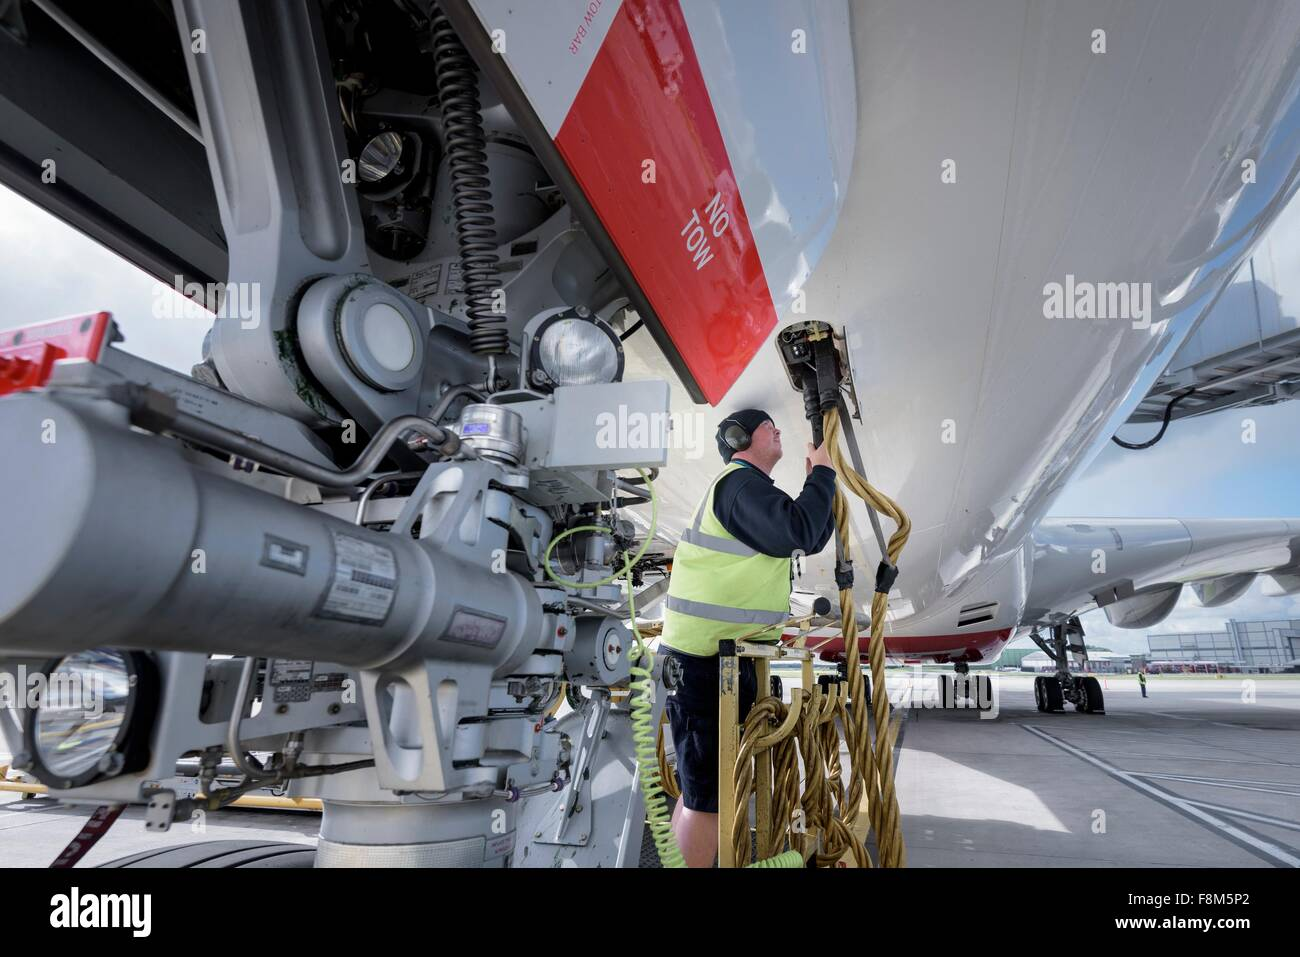 Ground crew service worker with A380 aircraft - Stock Image